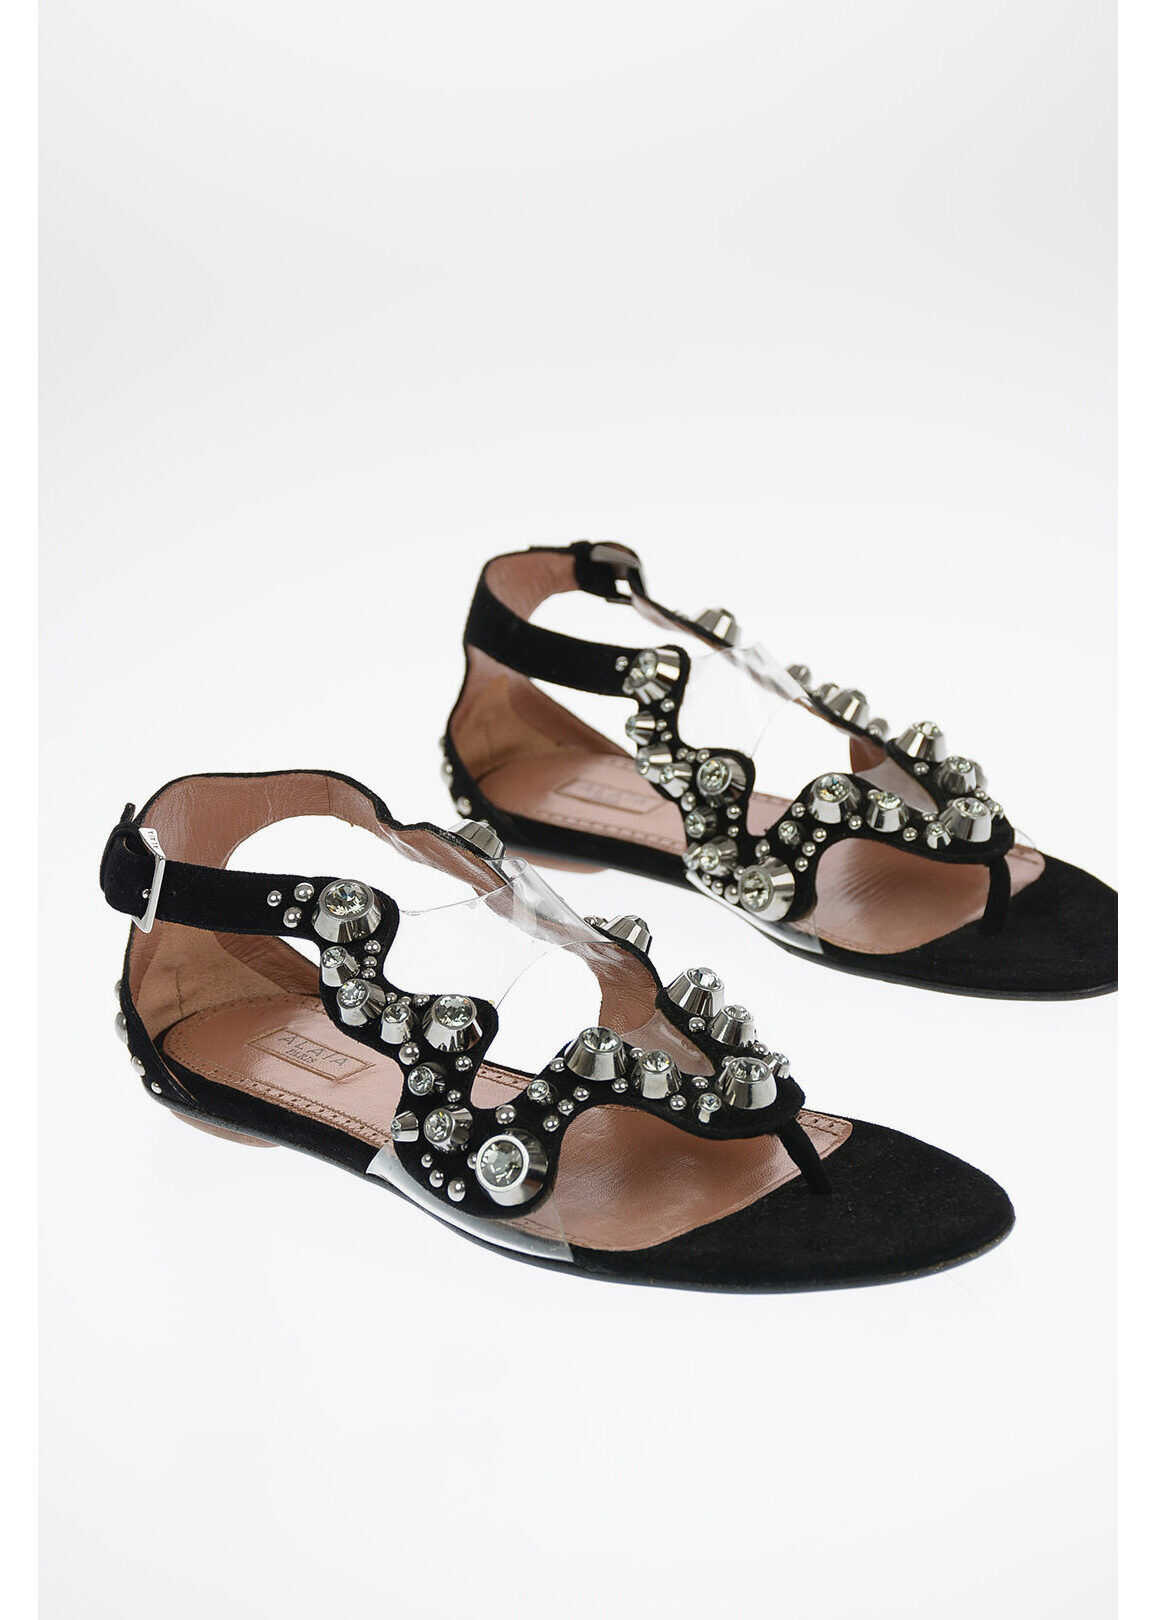 Alaïa Suede Thong Sandals with Jewel Studs BLACK imagine b-mall.ro